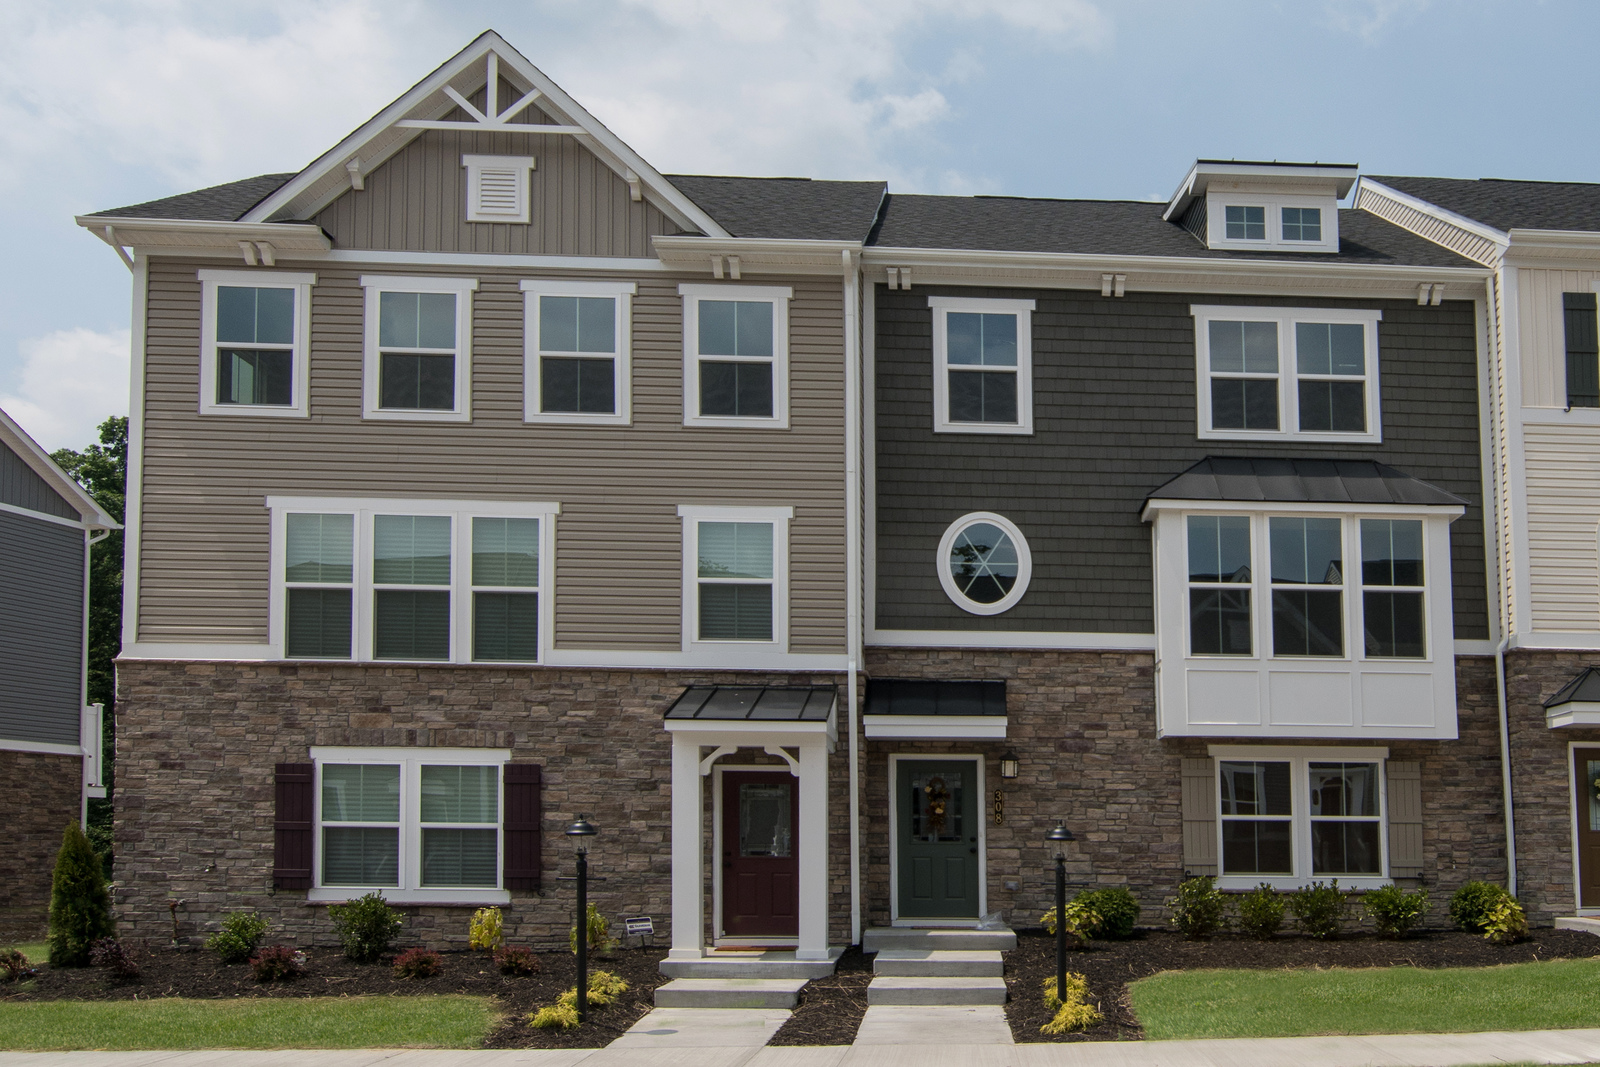 New Wexford Townhome Model for sale at Park Place Townhomes in ...